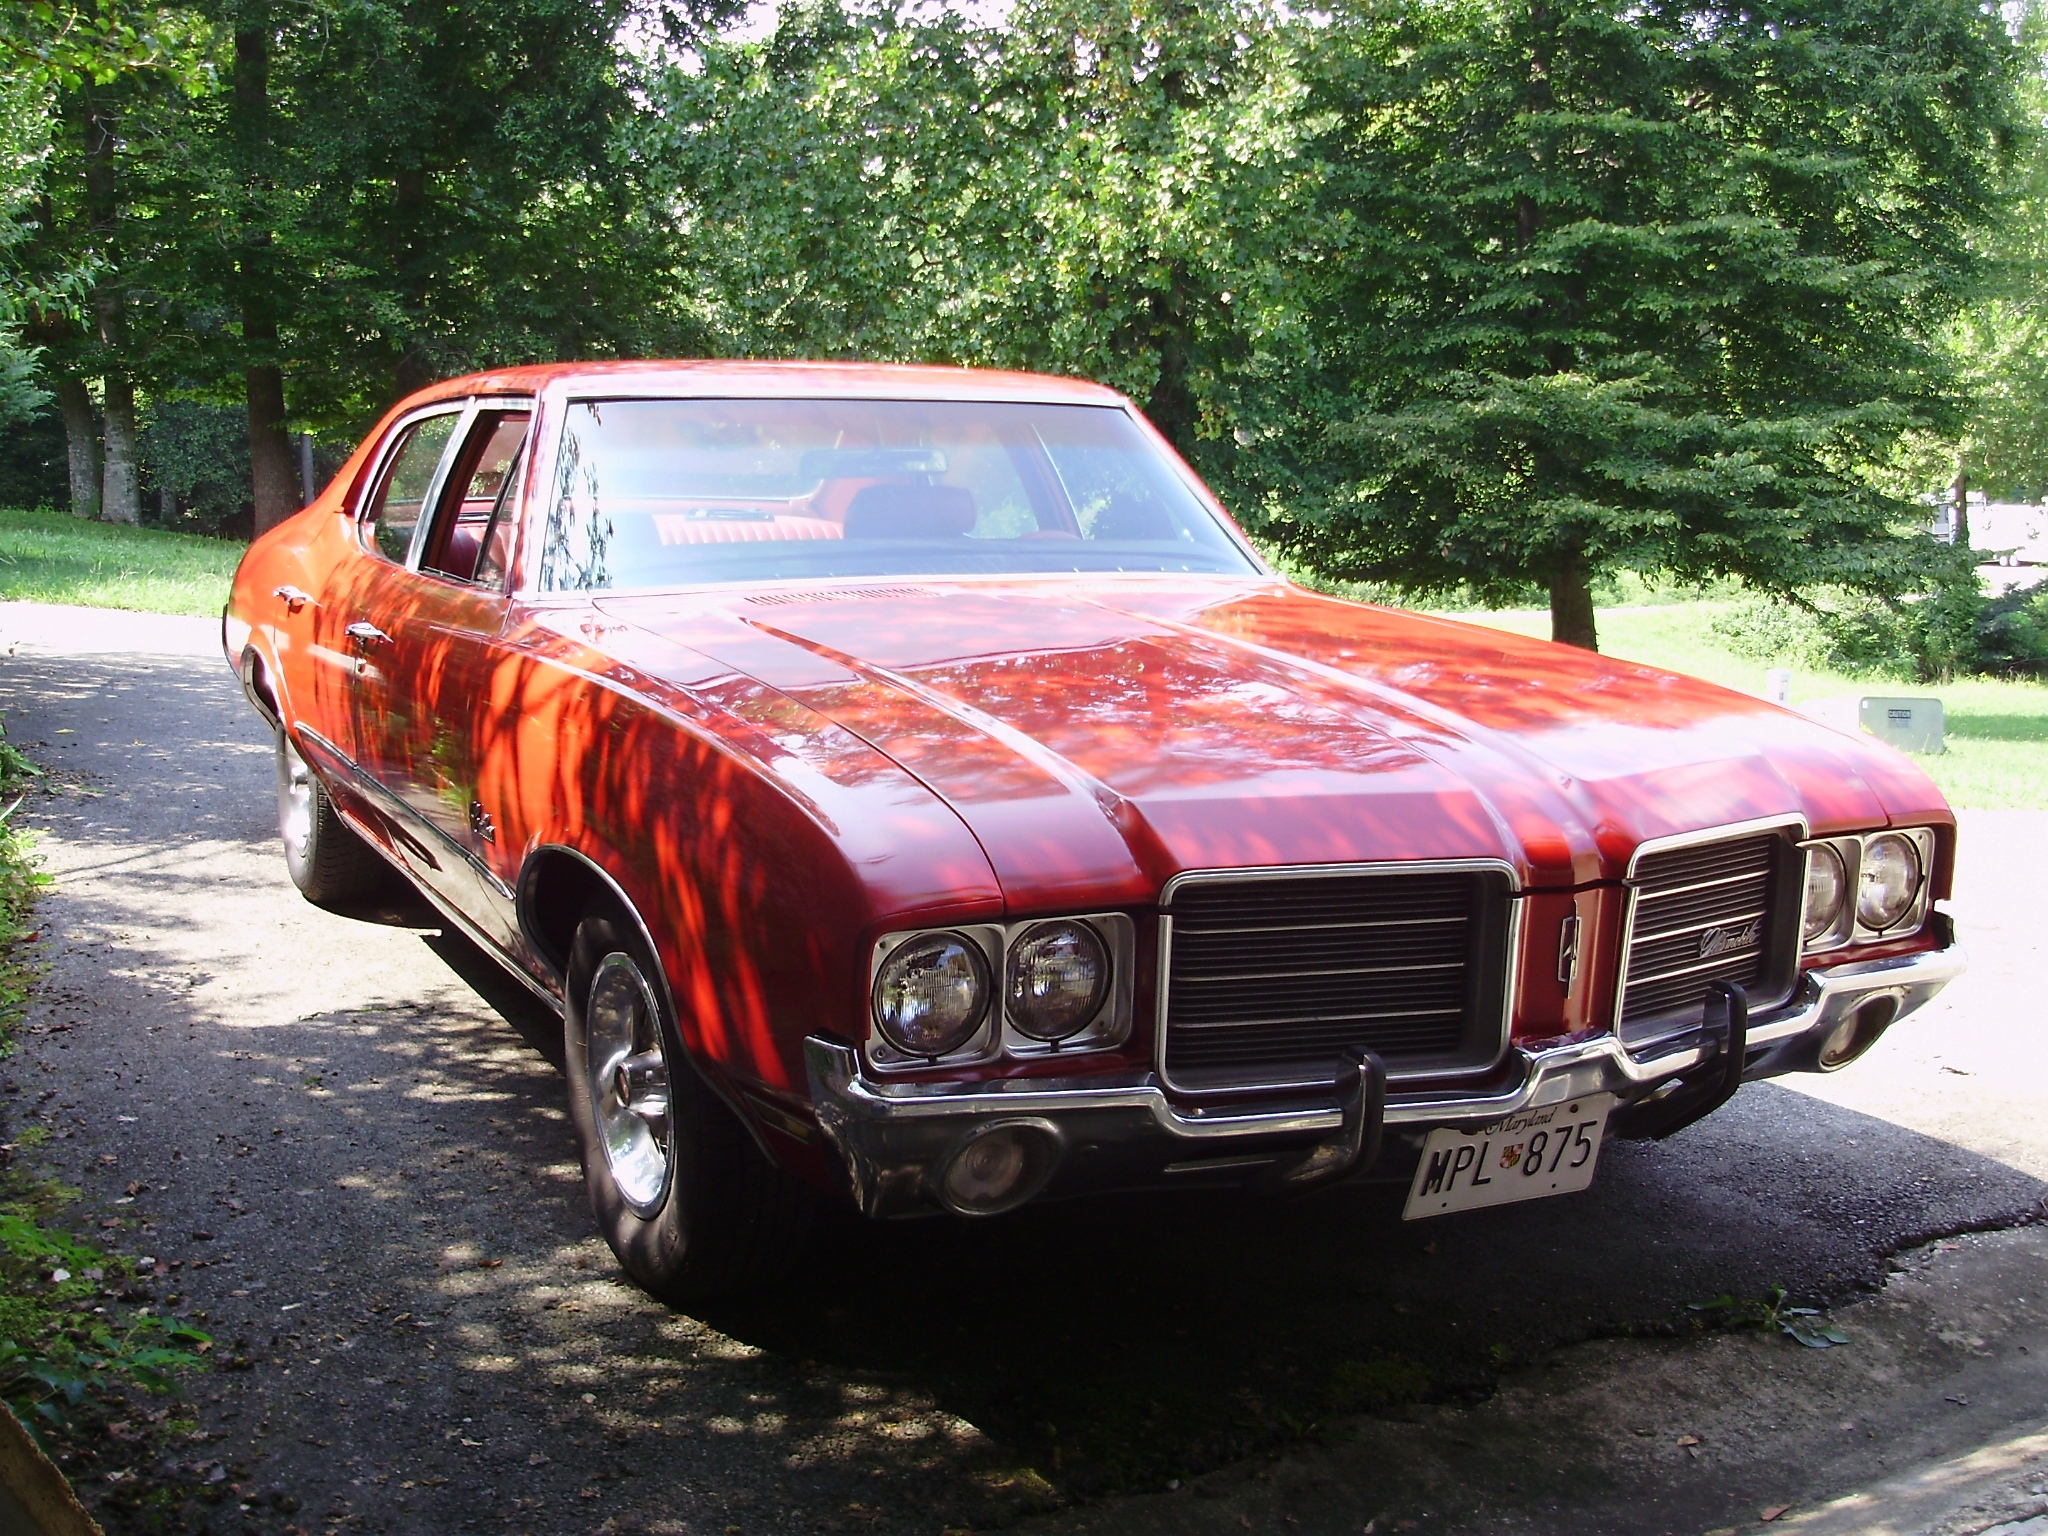 71Rocket350's 1971 Oldsmobile Cutlass